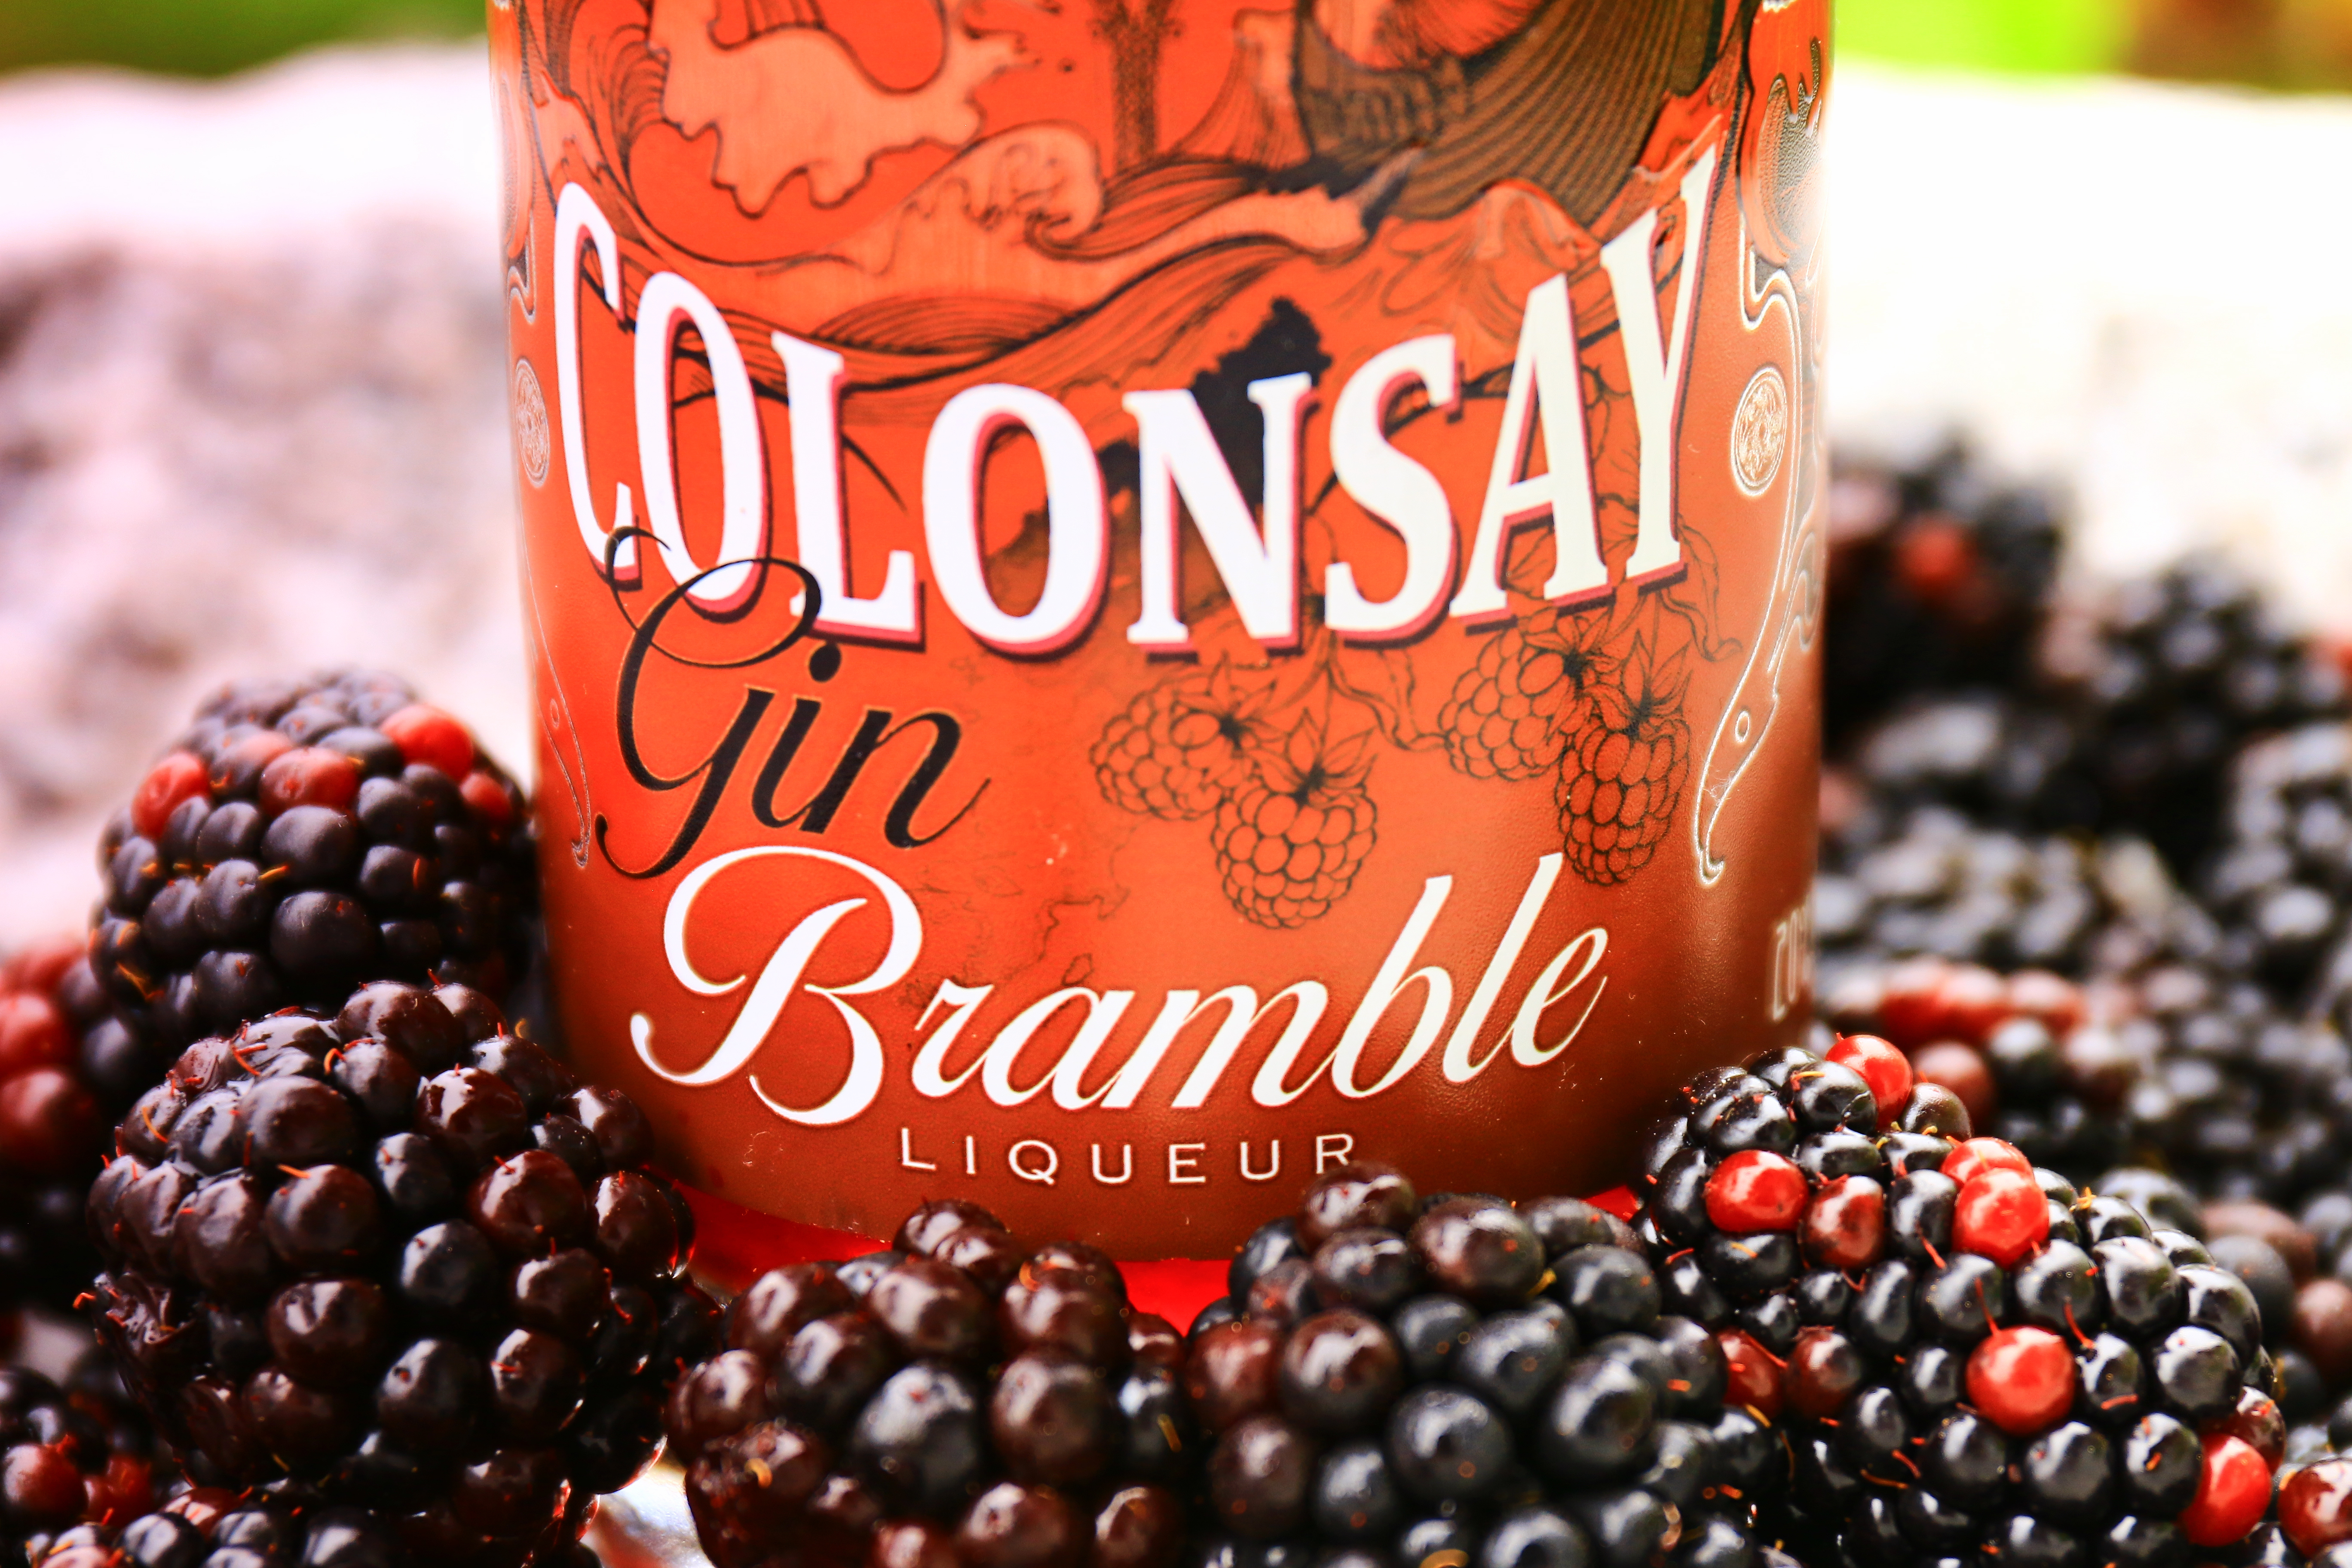 Colonsay Bramble Liqueur – Autumn in a bottle